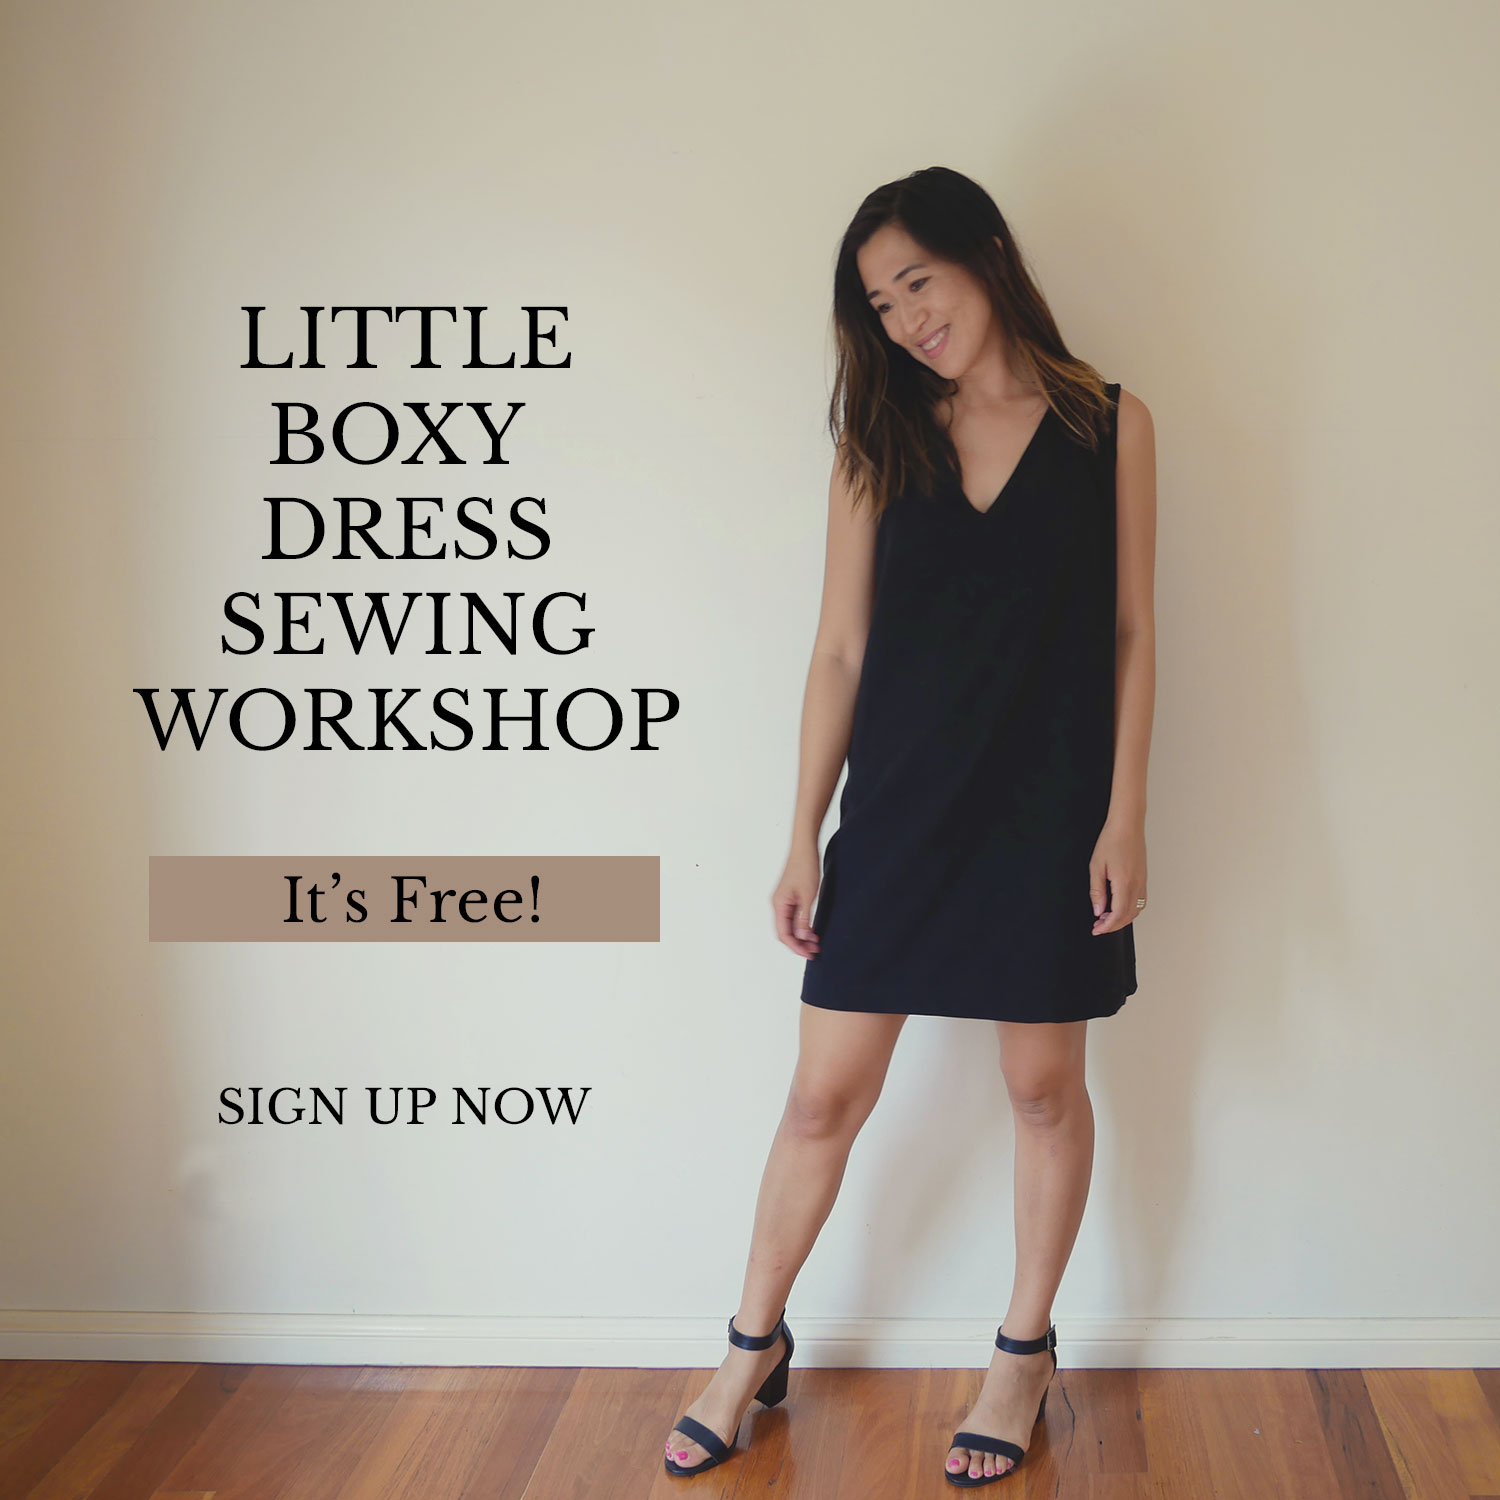 Free Little Boxy Dress Sewing Workshop